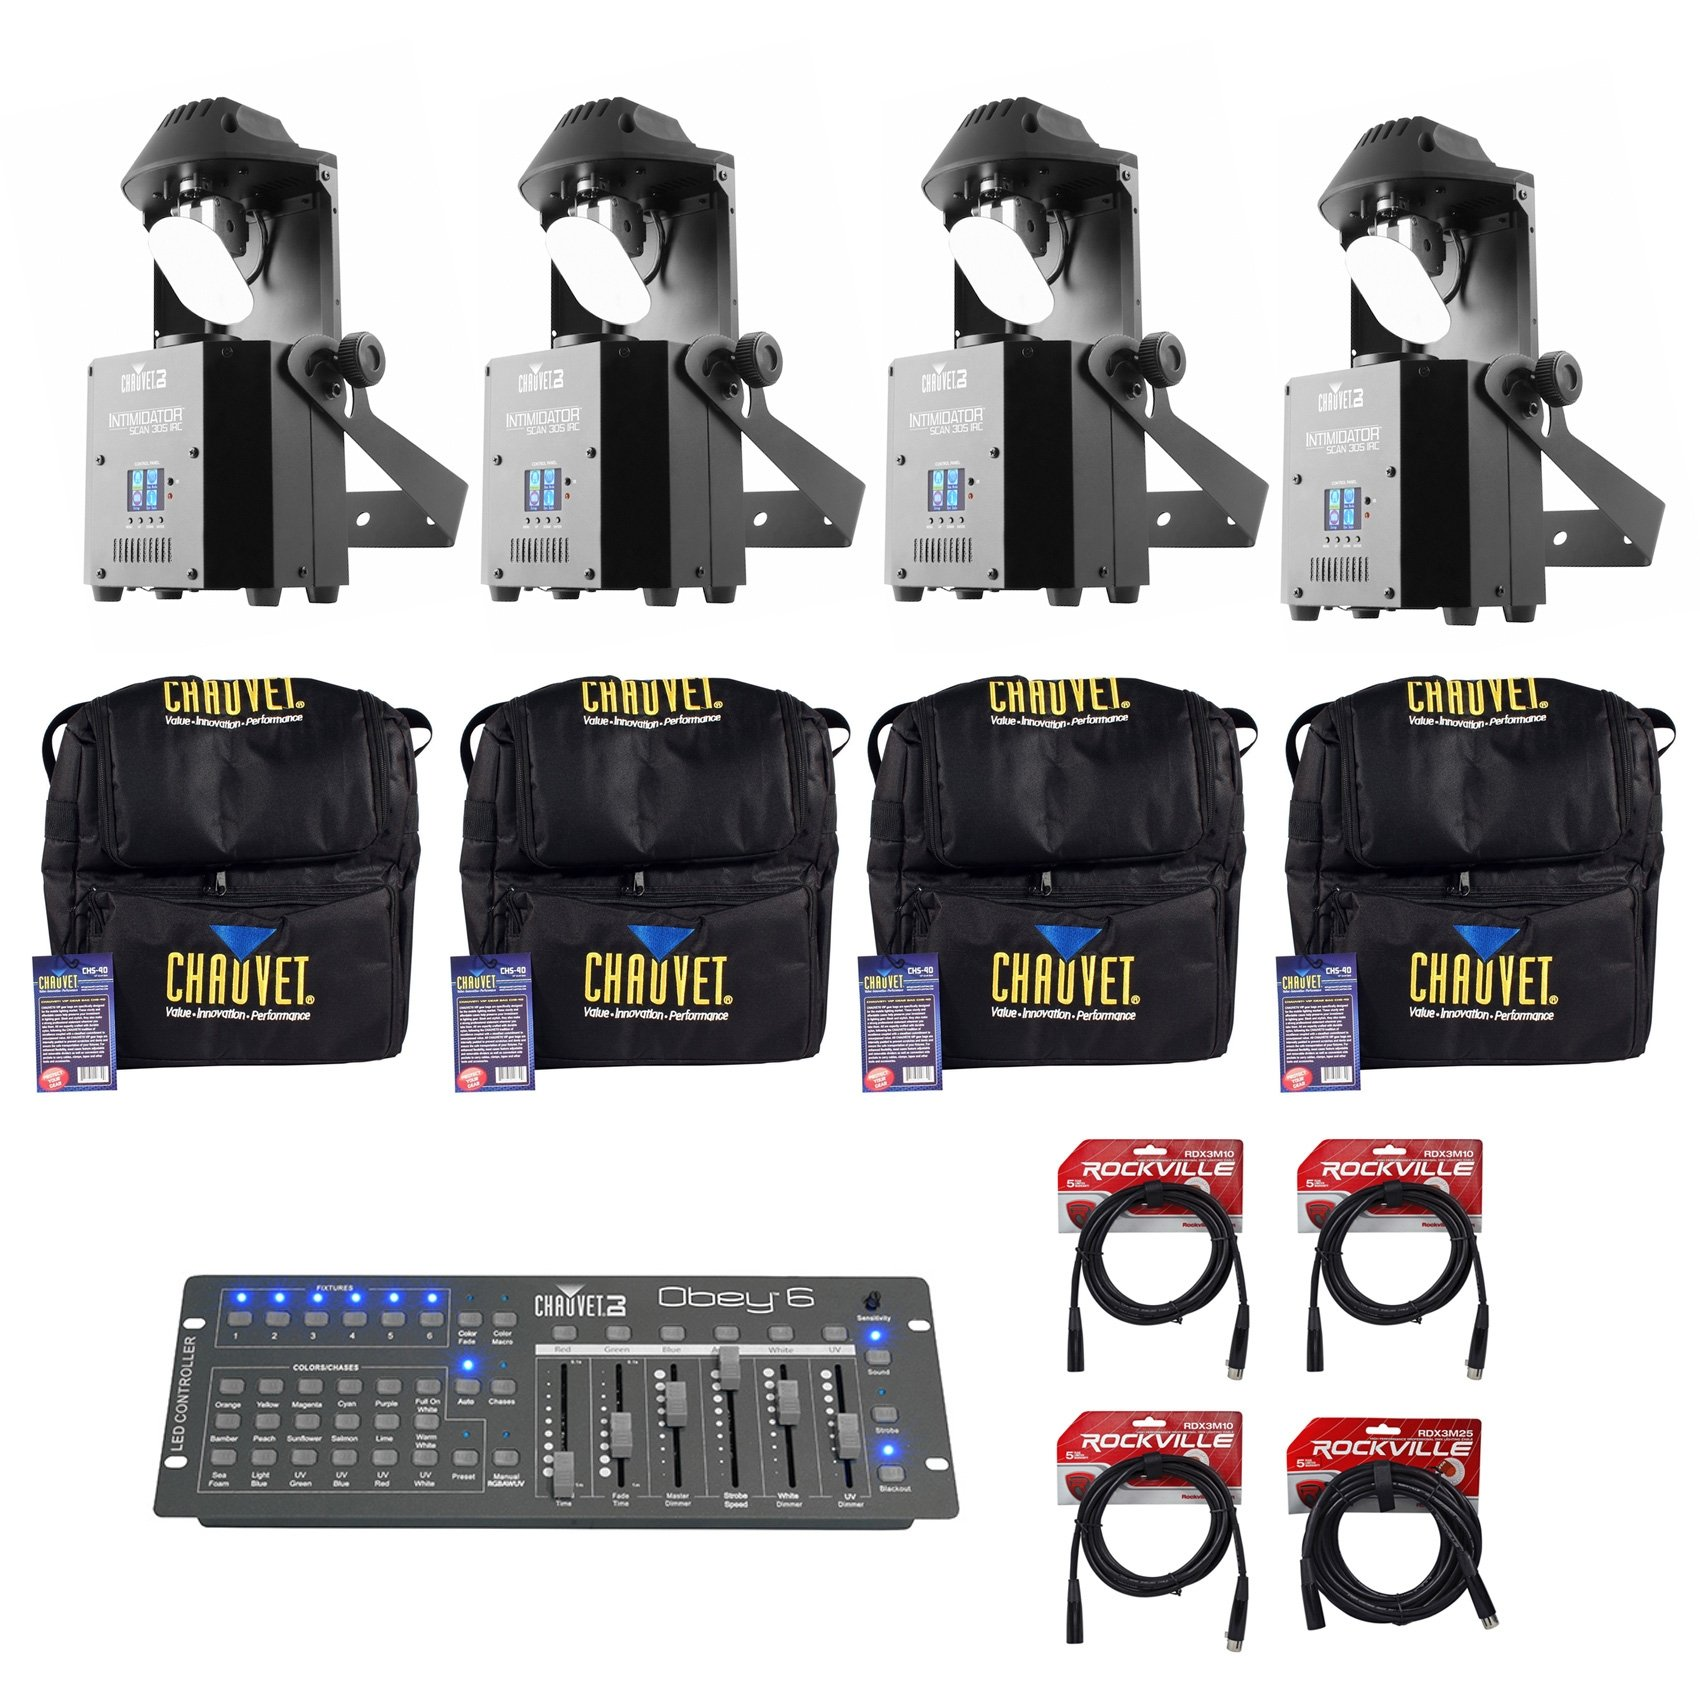 4 Chauvet DJ Intimidator Scan 305 IRC LED Mirror Scanners+Bags+Controller+Cables